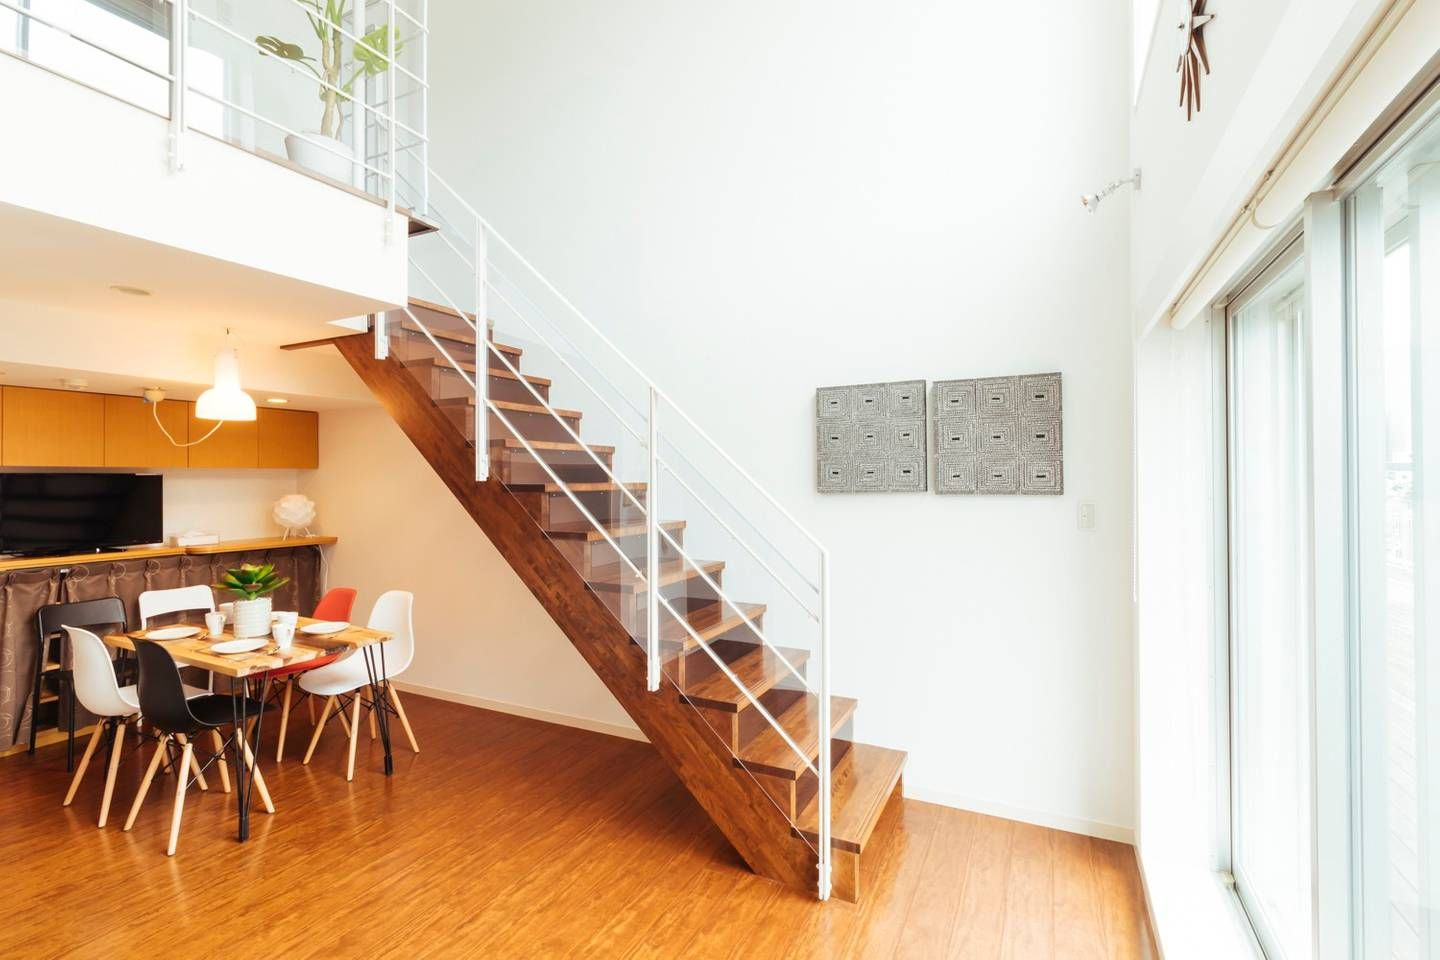 Specious 80sqm Duplex In Centre Of Tokyo Apartments For Rent In Shibuya Ku Tokyo Apartment Apartments For Rent House Interior